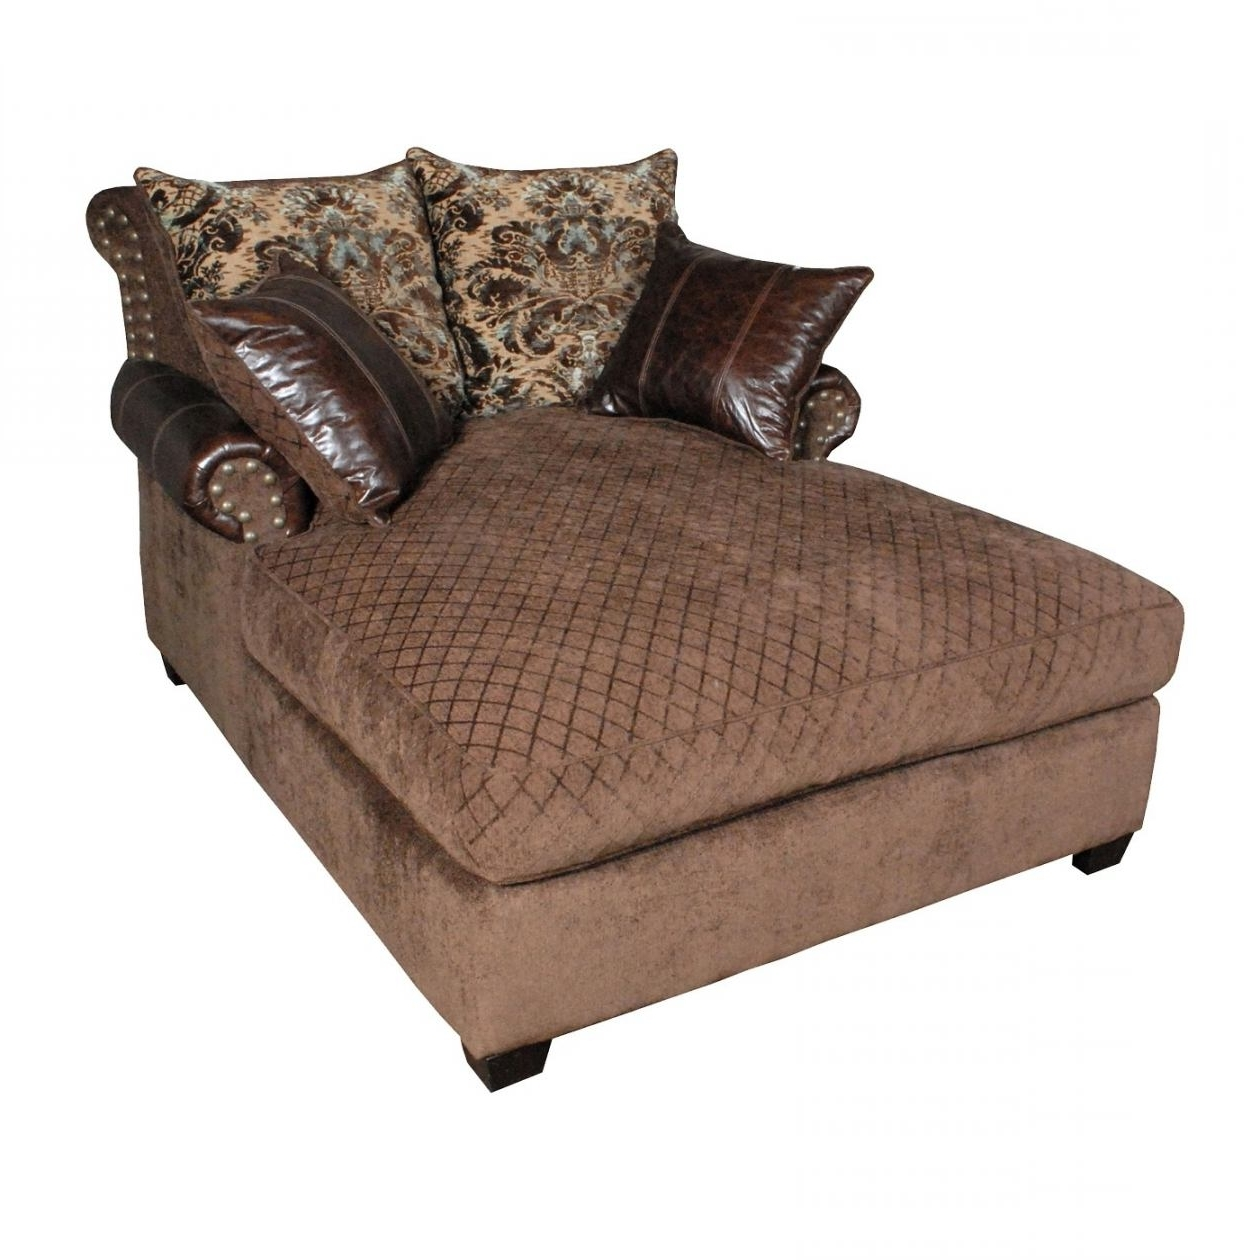 Dtavares For Brown Chaise Lounges (View 6 of 15)